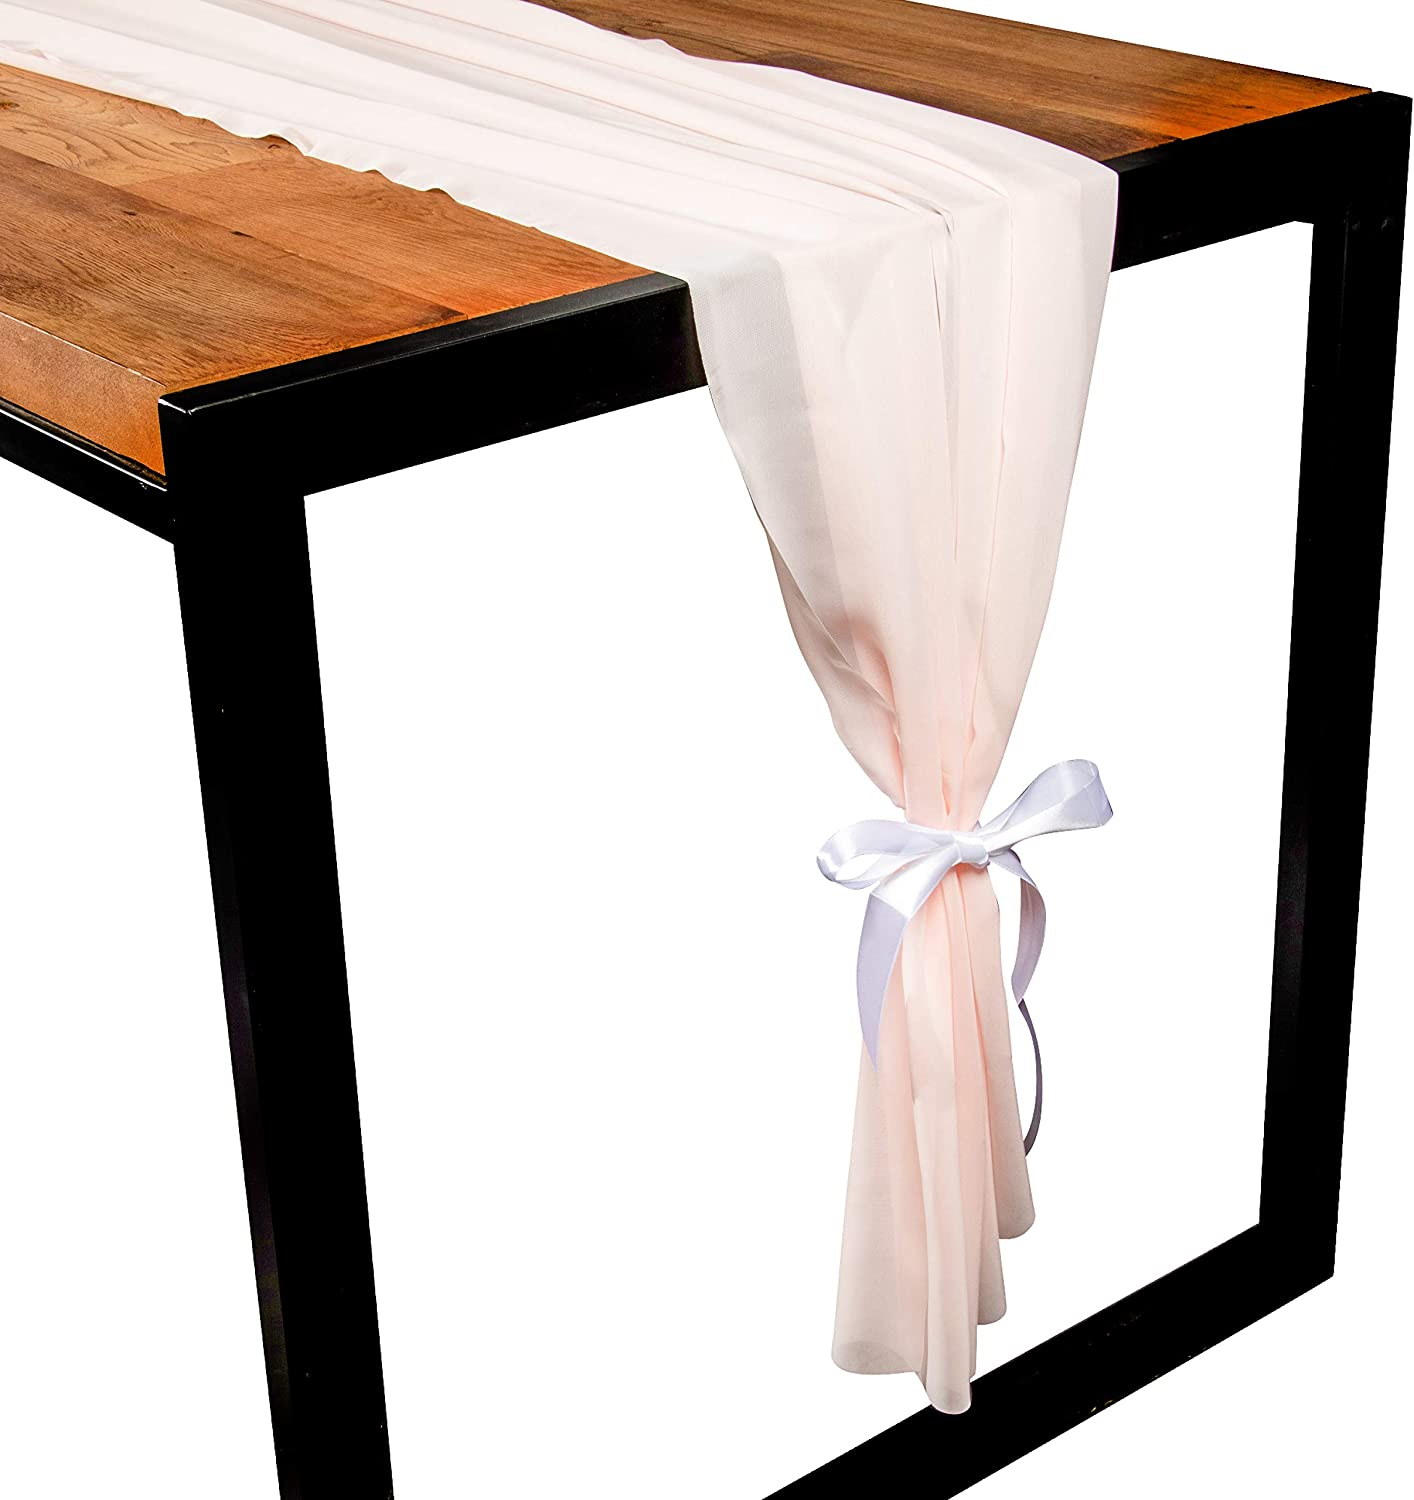 Juvale 10-Foot Pink Chiffon Table Runner - Elegant Flowing Runner Suitable for Weddings, Birthdays, Baby Showers, Bridal Showers, Festive Occasions, 120 x 29 Inches